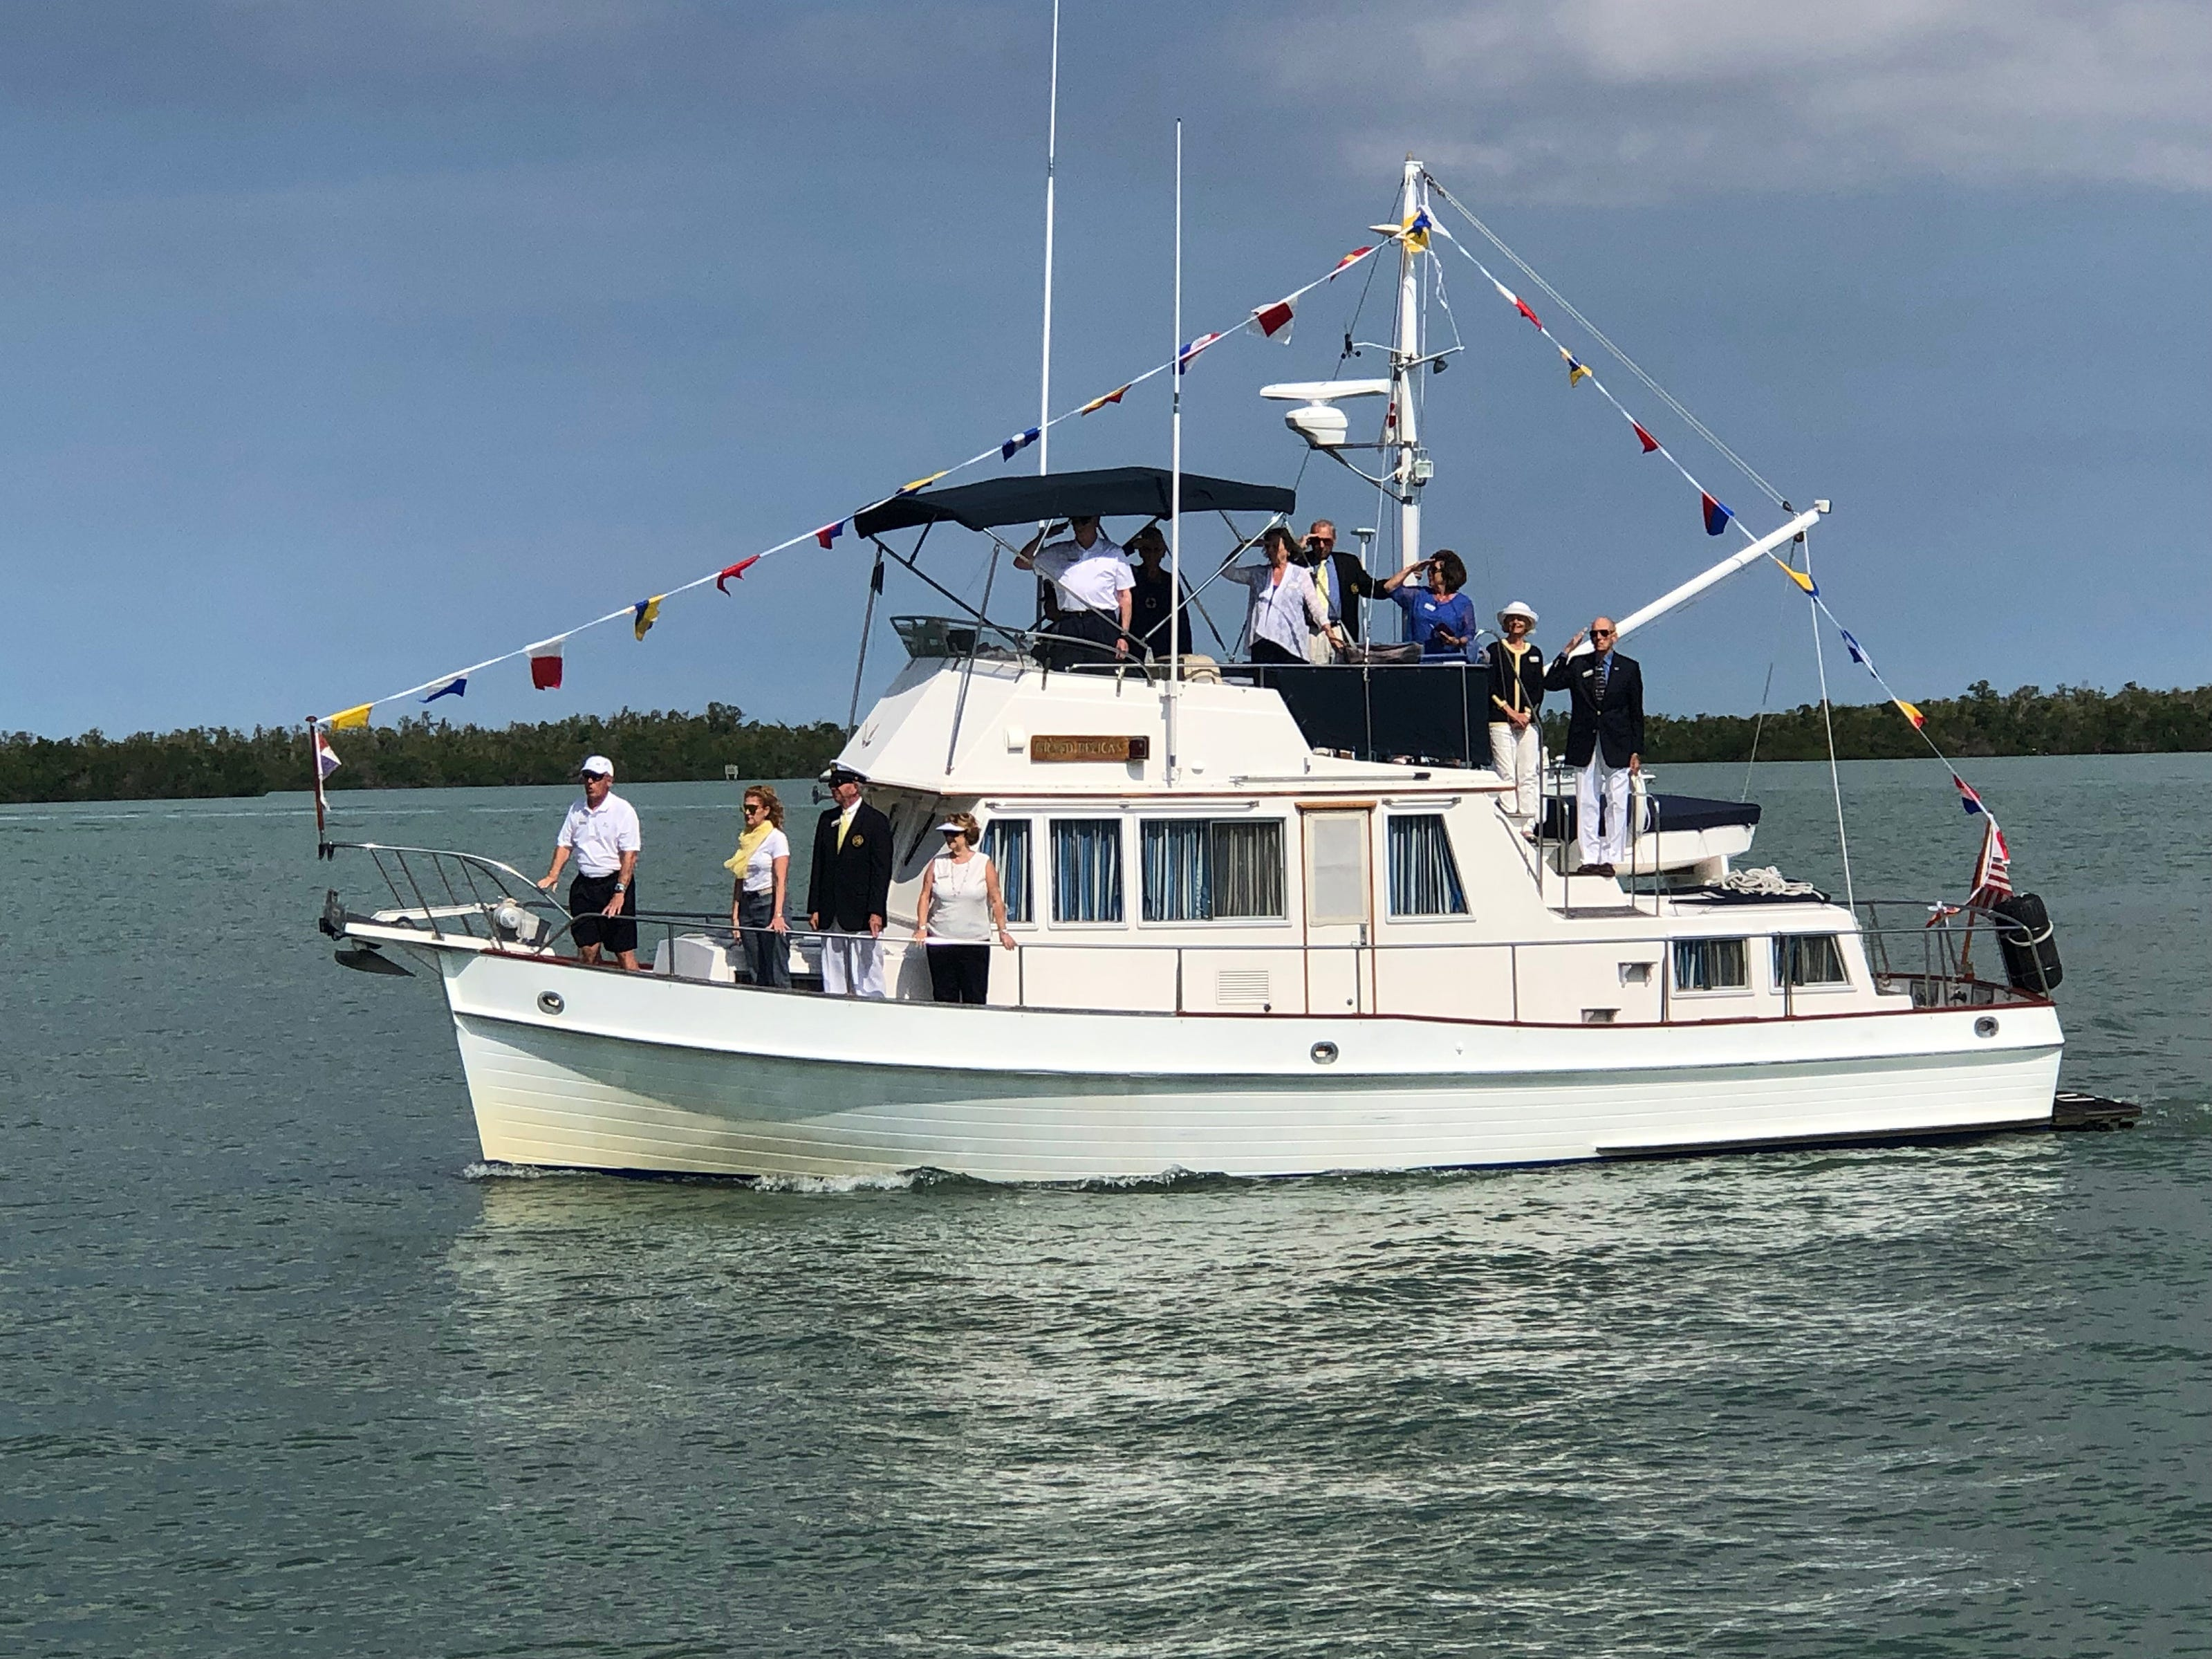 Grand Pelican Captain Pete Frazier, First Mate Peggy Frazier and crew prepare to pass the Marco Island Yacht Club and exchange salutes with MIYC bridge officers.